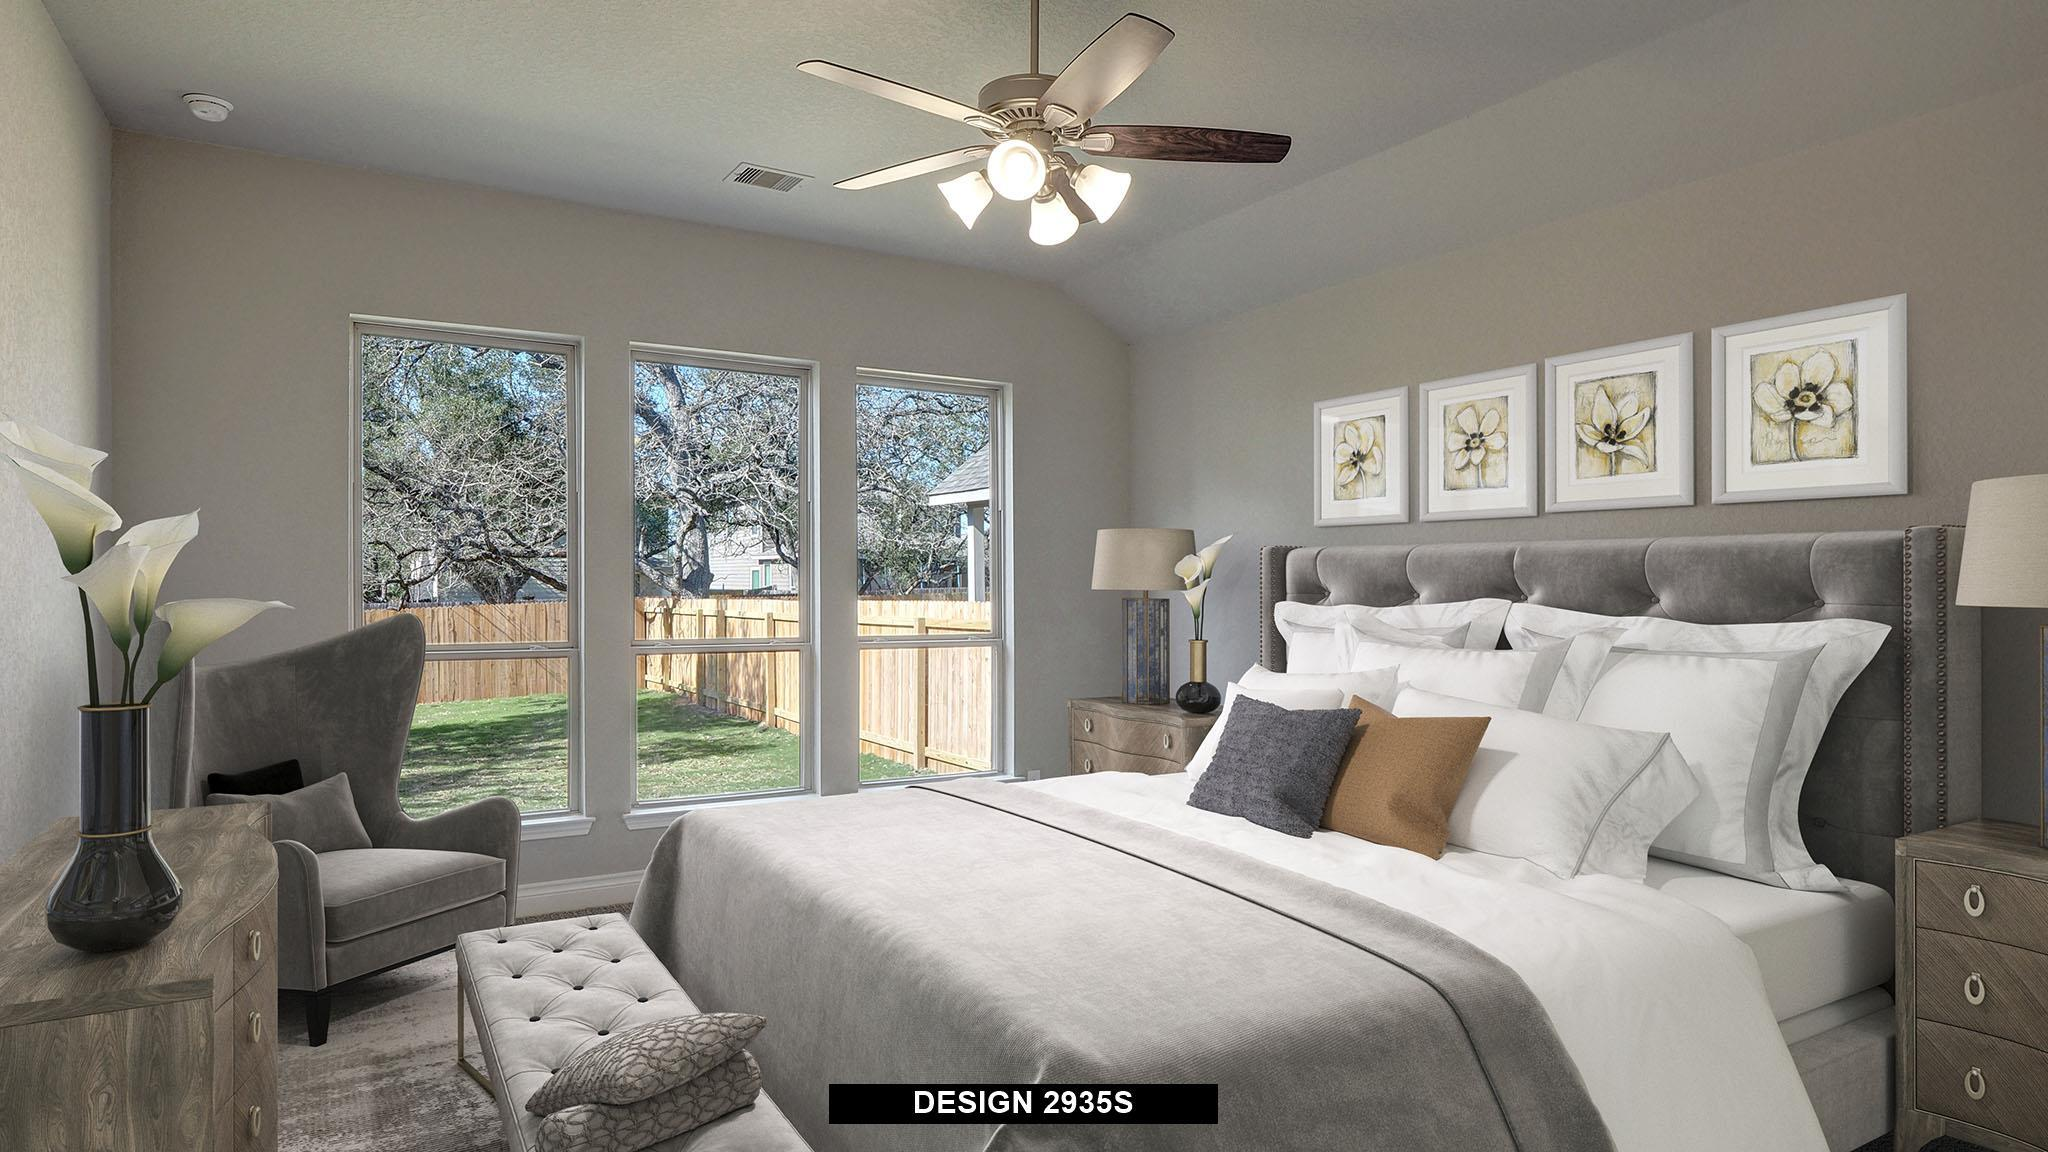 Bedroom featured in the 2935S By Perry Homes in San Antonio, TX